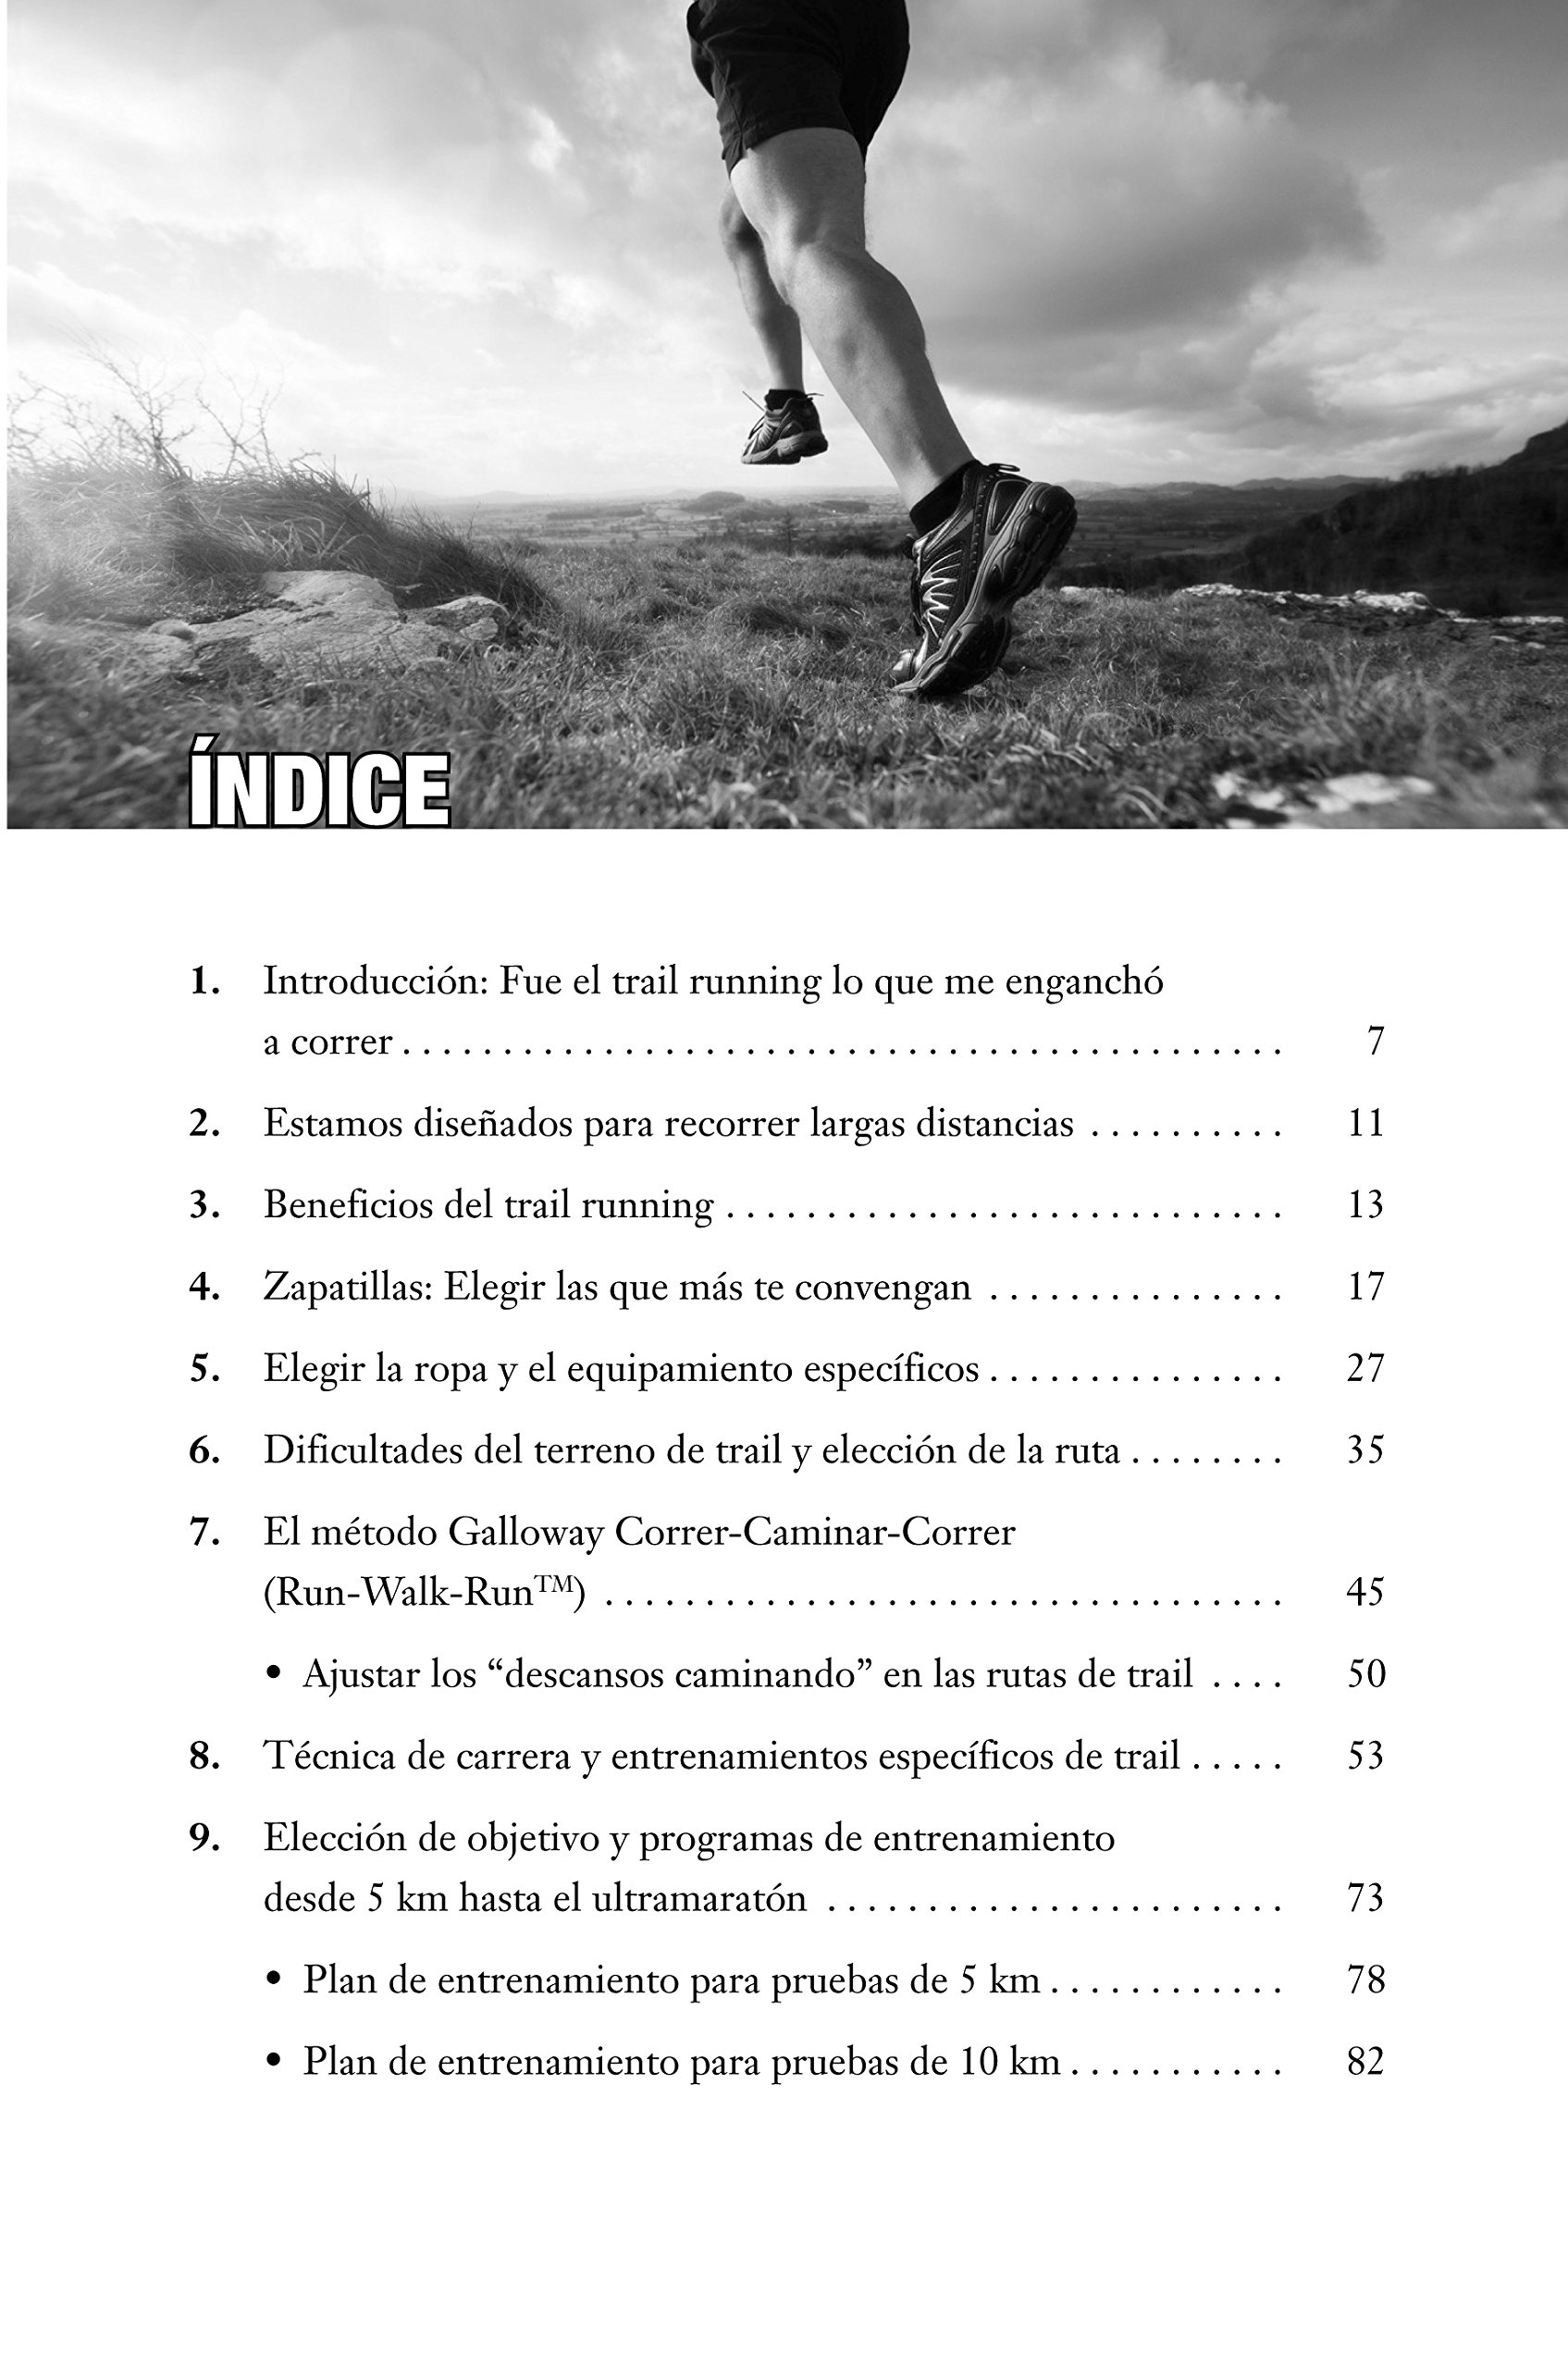 GUIA PARA EL CORREDOR DE MONTAÑA:TRAIL RUNNING: GALLOWAY(029883): 9788479029883: Amazon.com: Books